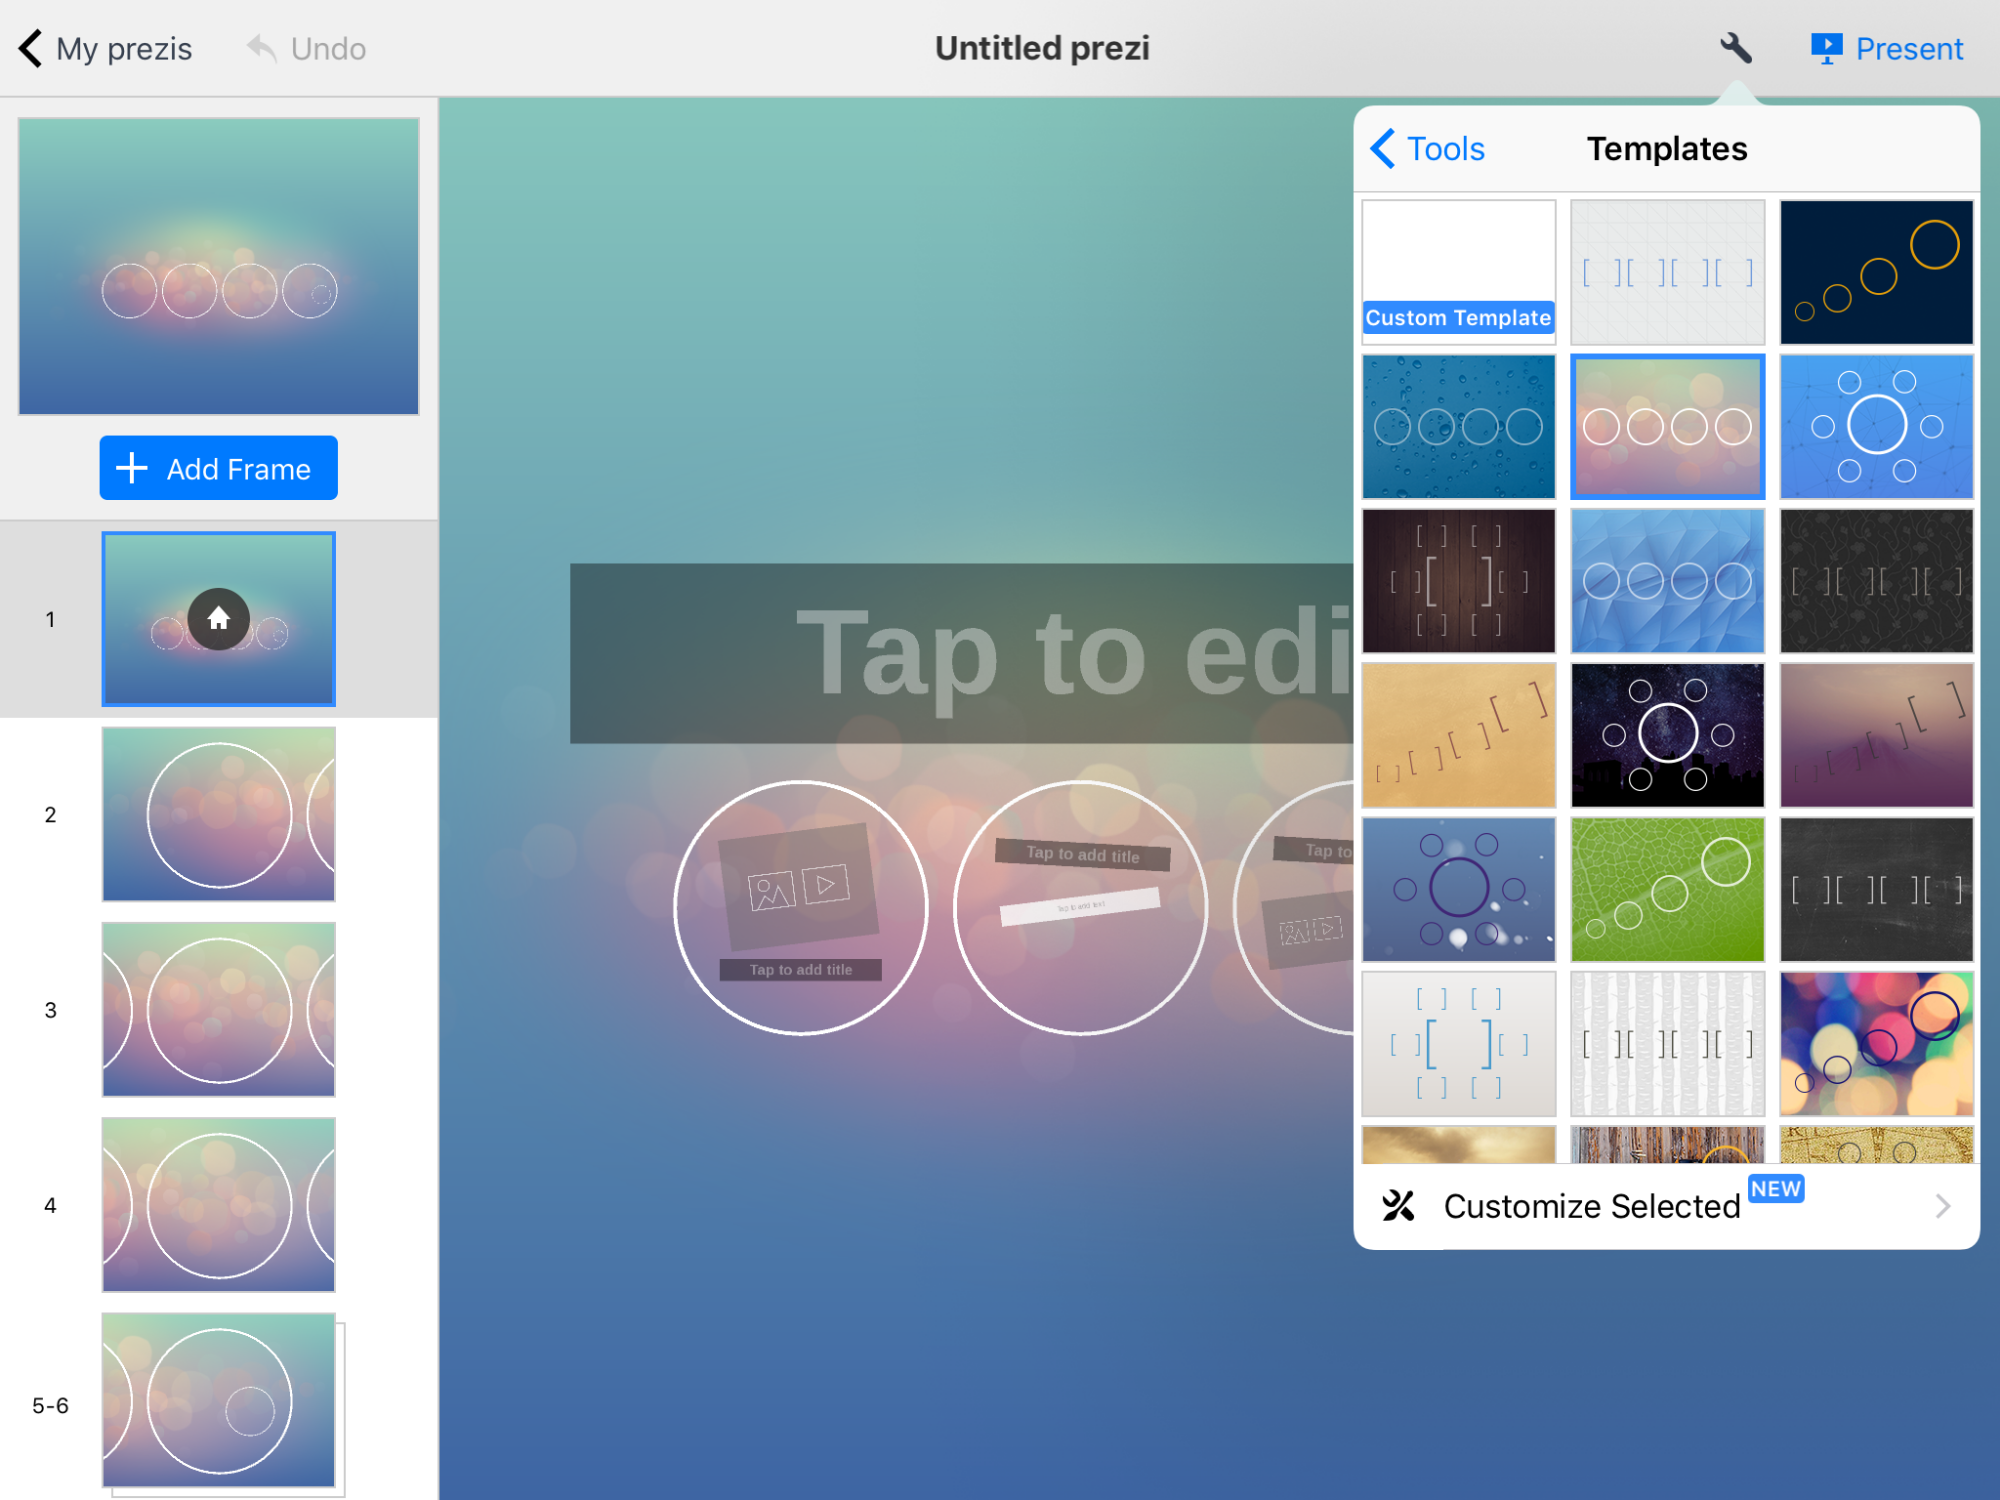 edtech tutorial how to use the app prezi to create an amazing